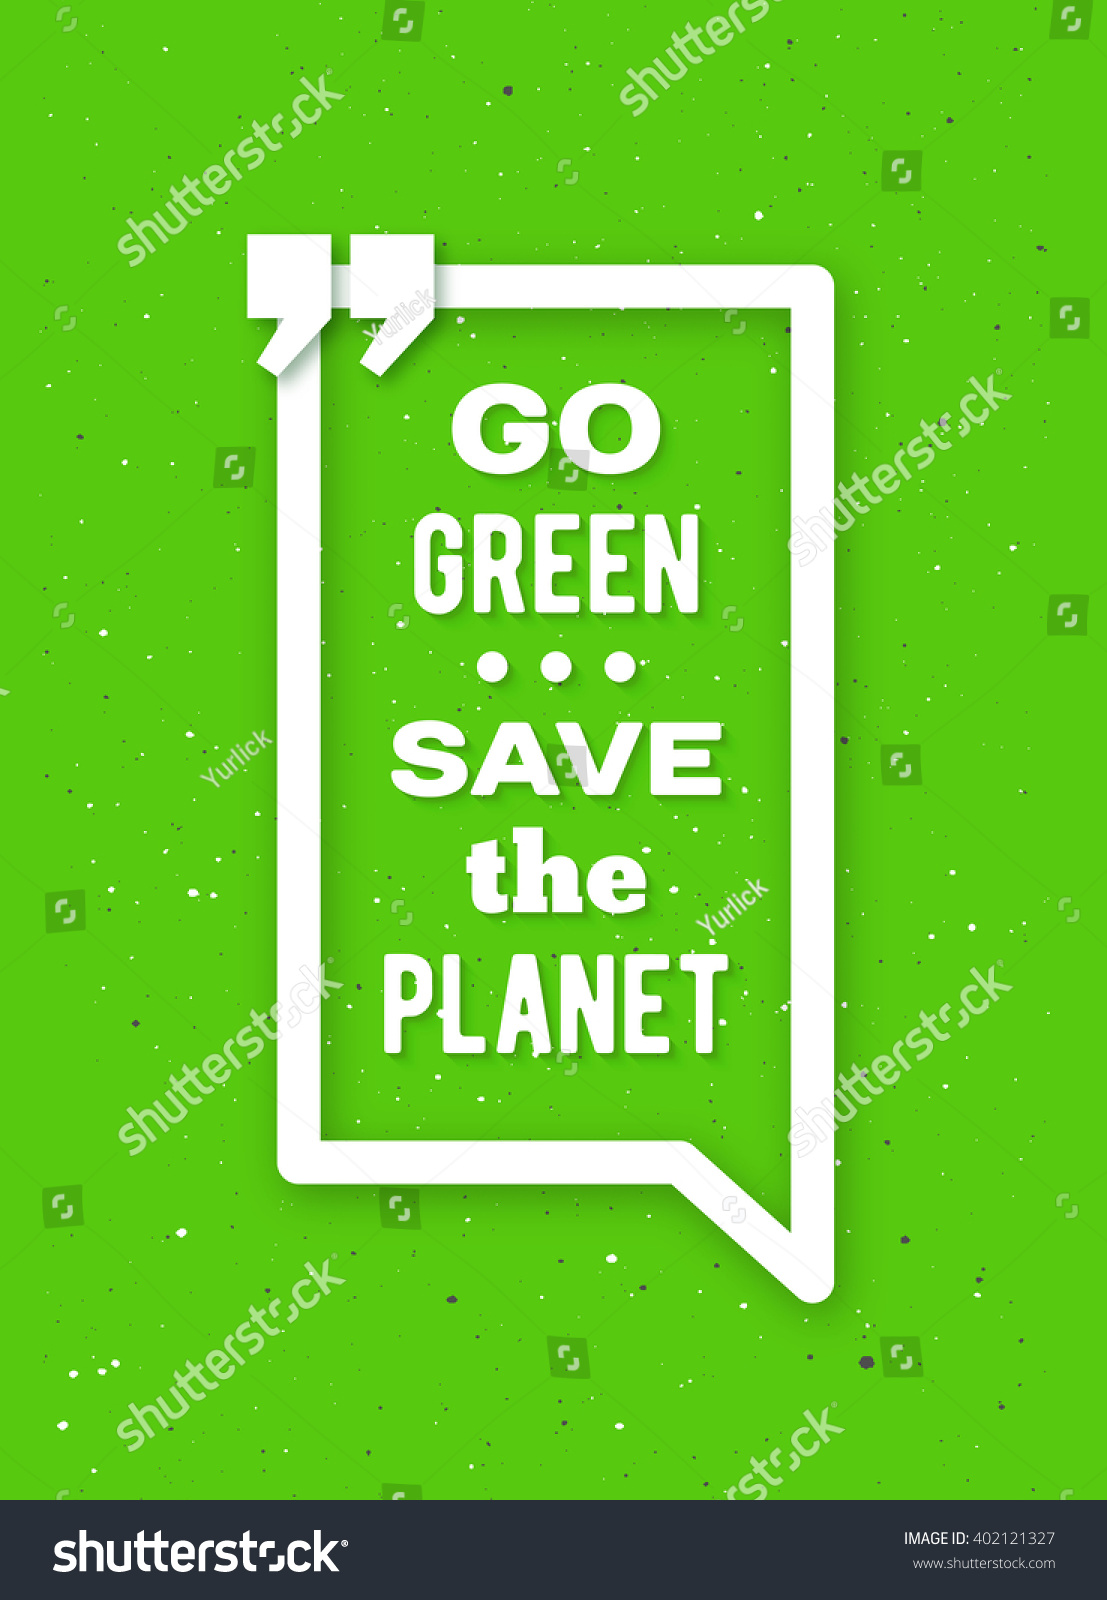 go green save earth essays Essay on green earth - online essay and research paper writing assistance   francis go here school in what is a pick five products trash bags plates cutlery   introduction to their thoughts, tips and help save earth an extensive fossil record.